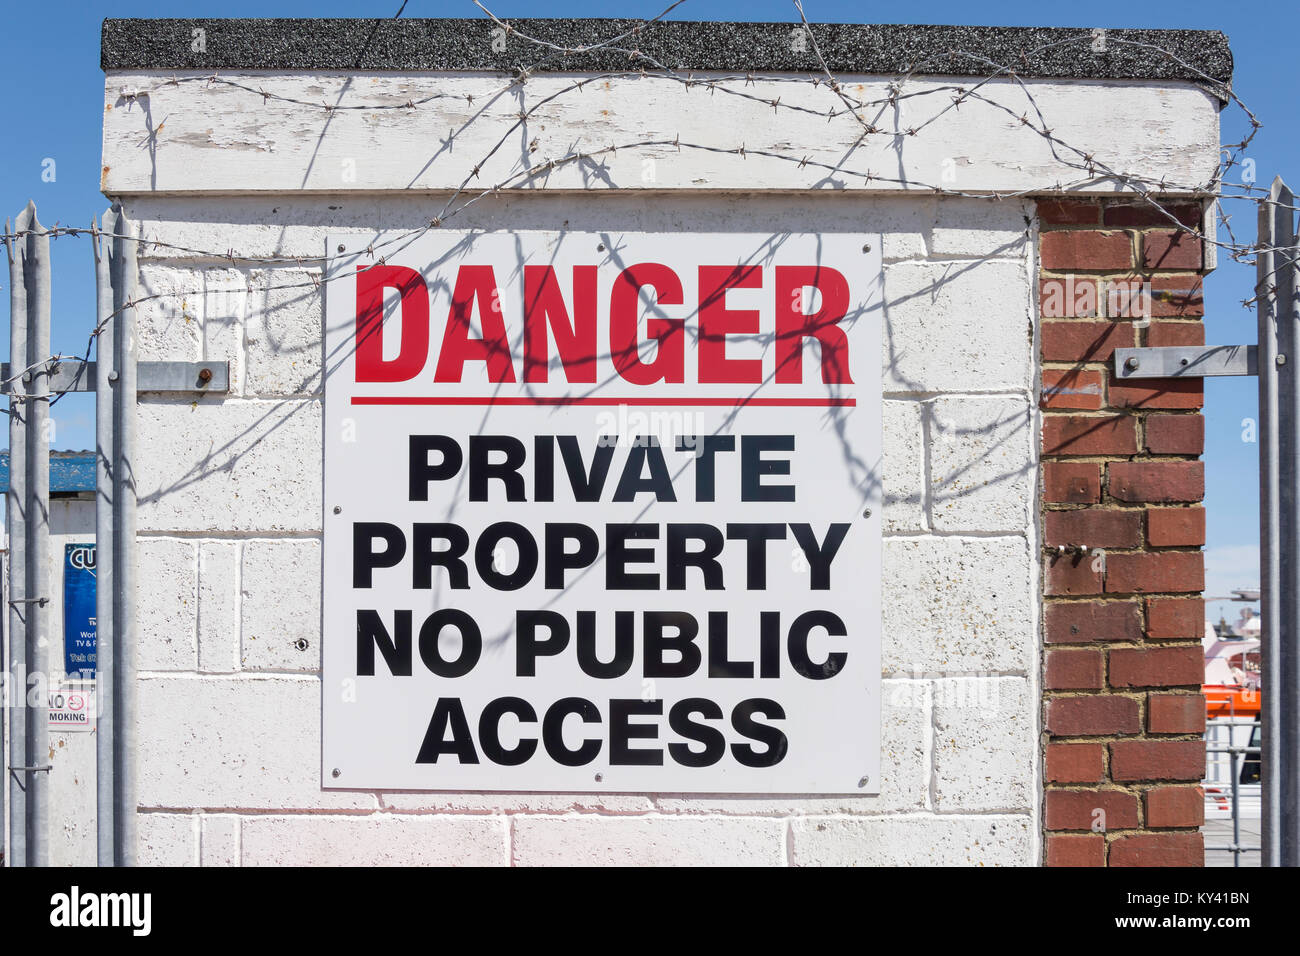 Danger, no public access sign, West Quay, Newhaven, East Sussex, England, United Kingdom - Stock Image